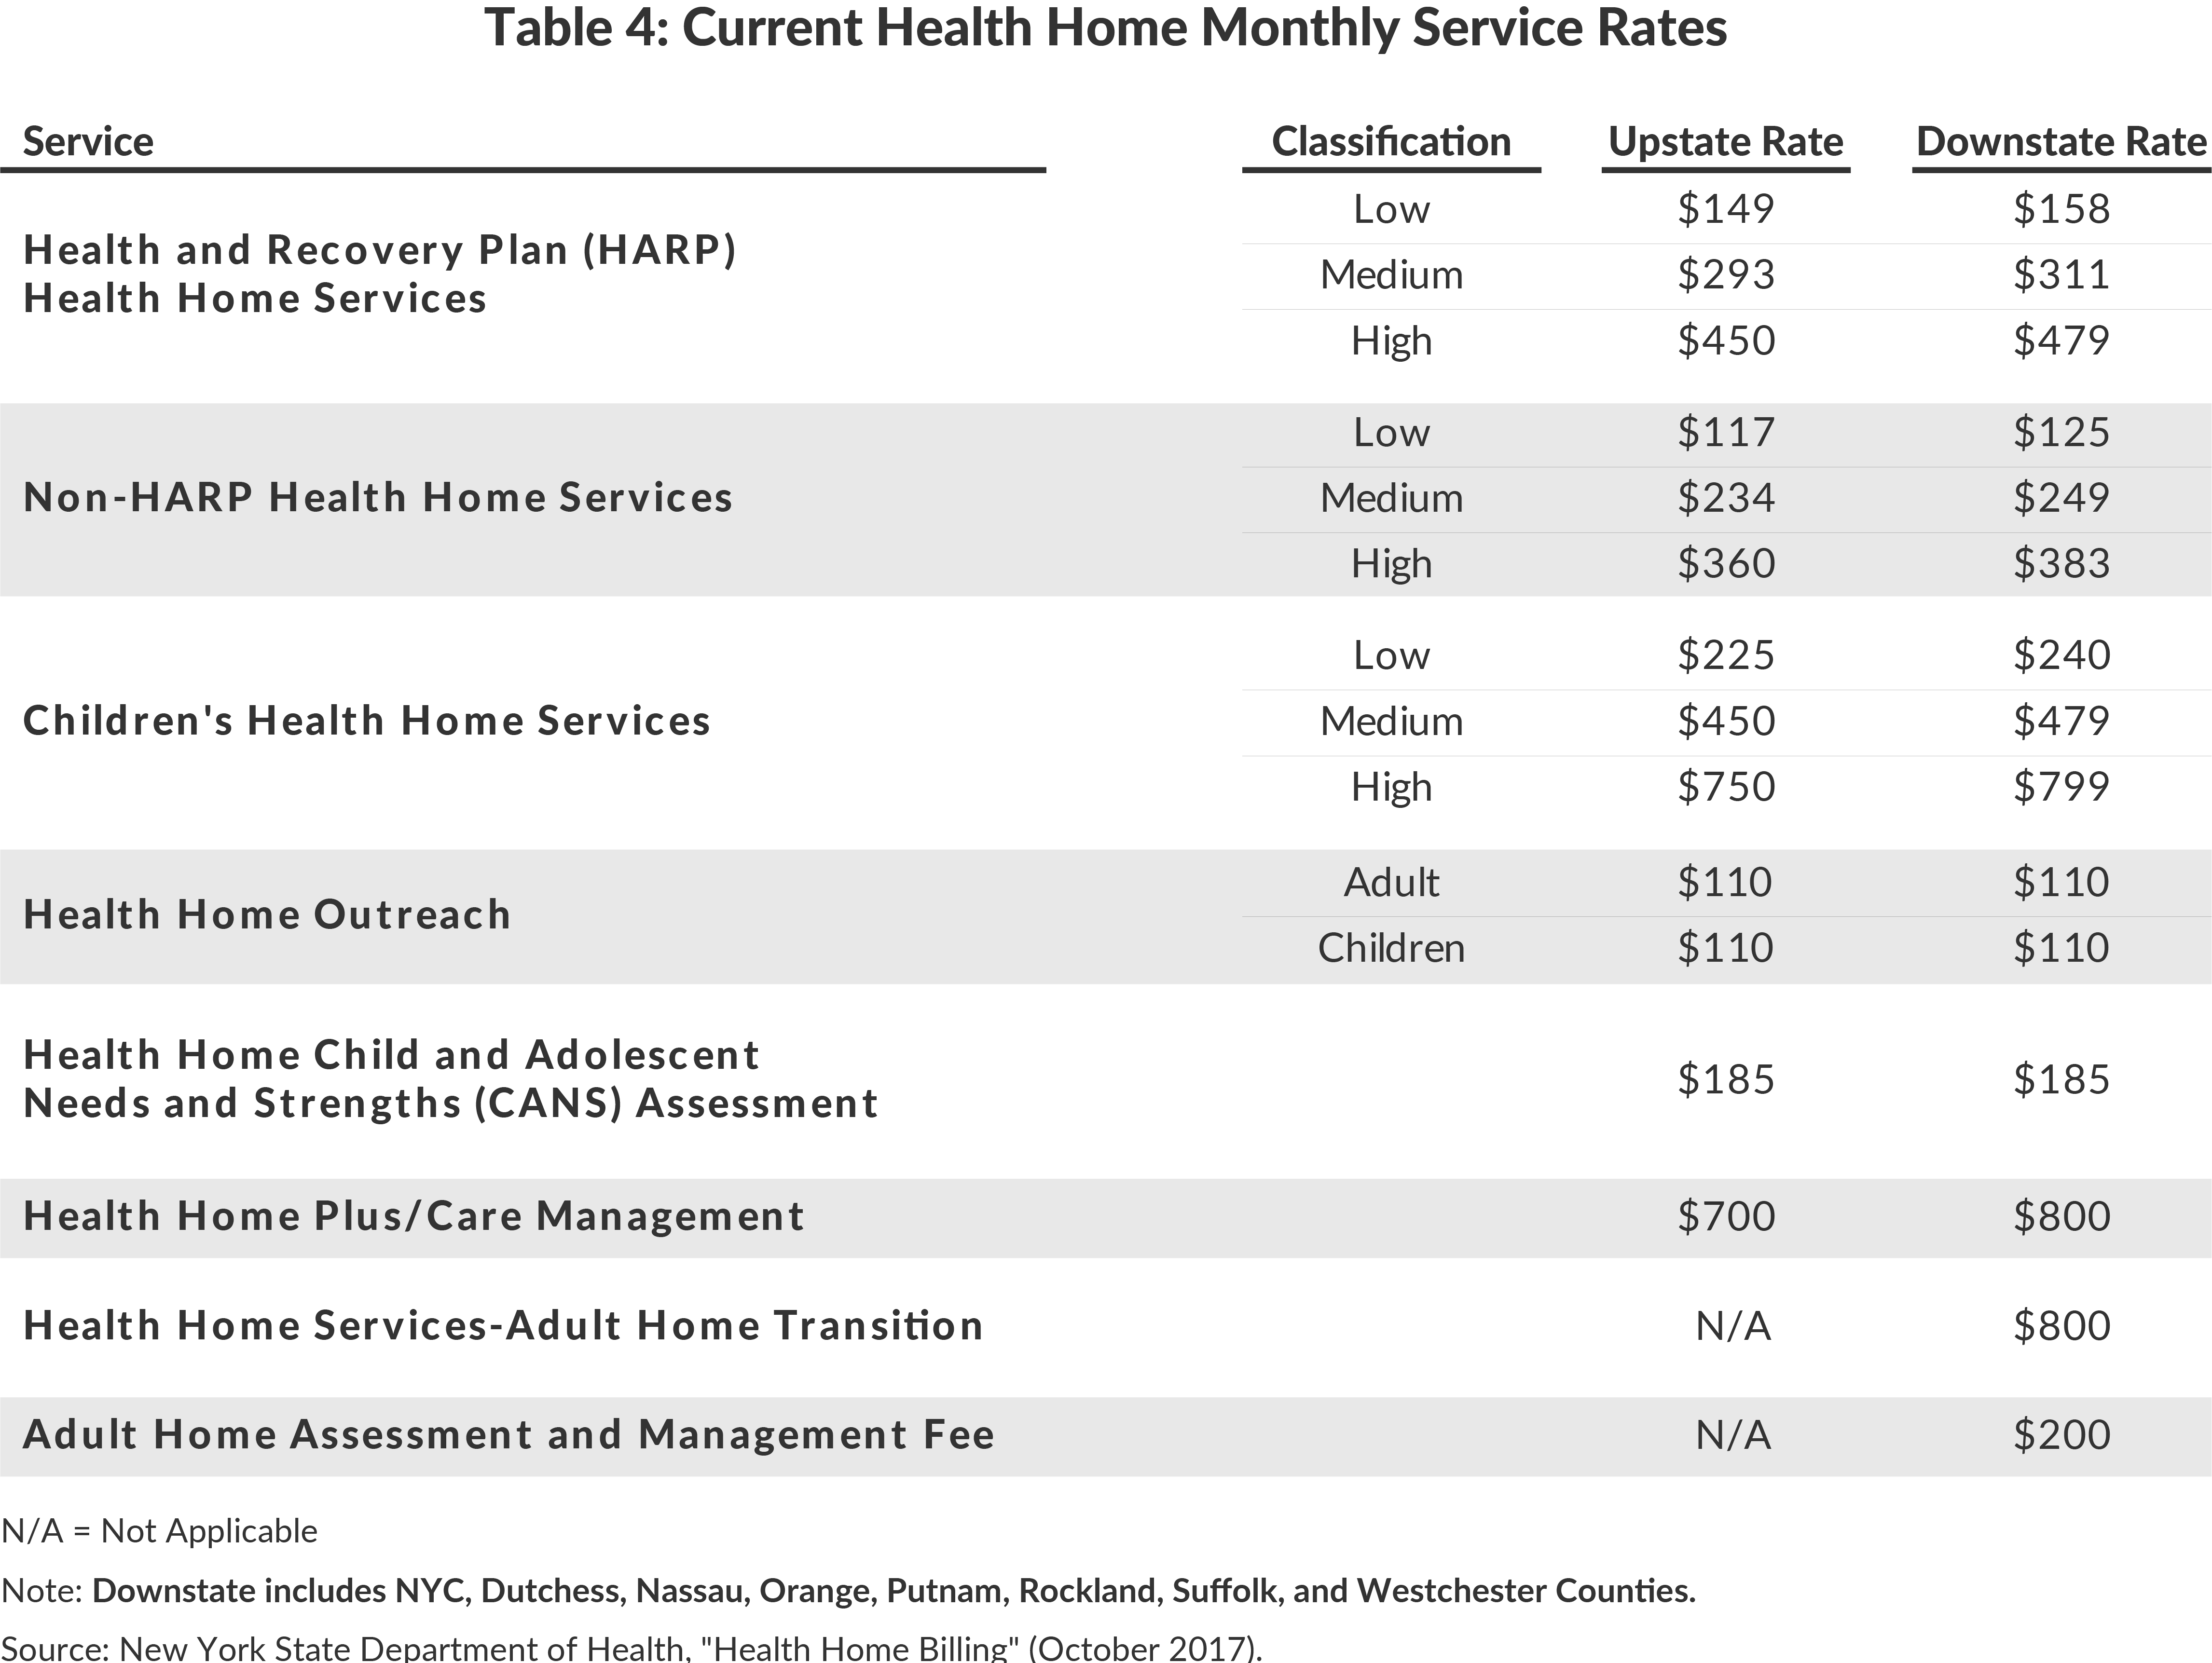 Table 4: Current Health Home Monthly Service Rates